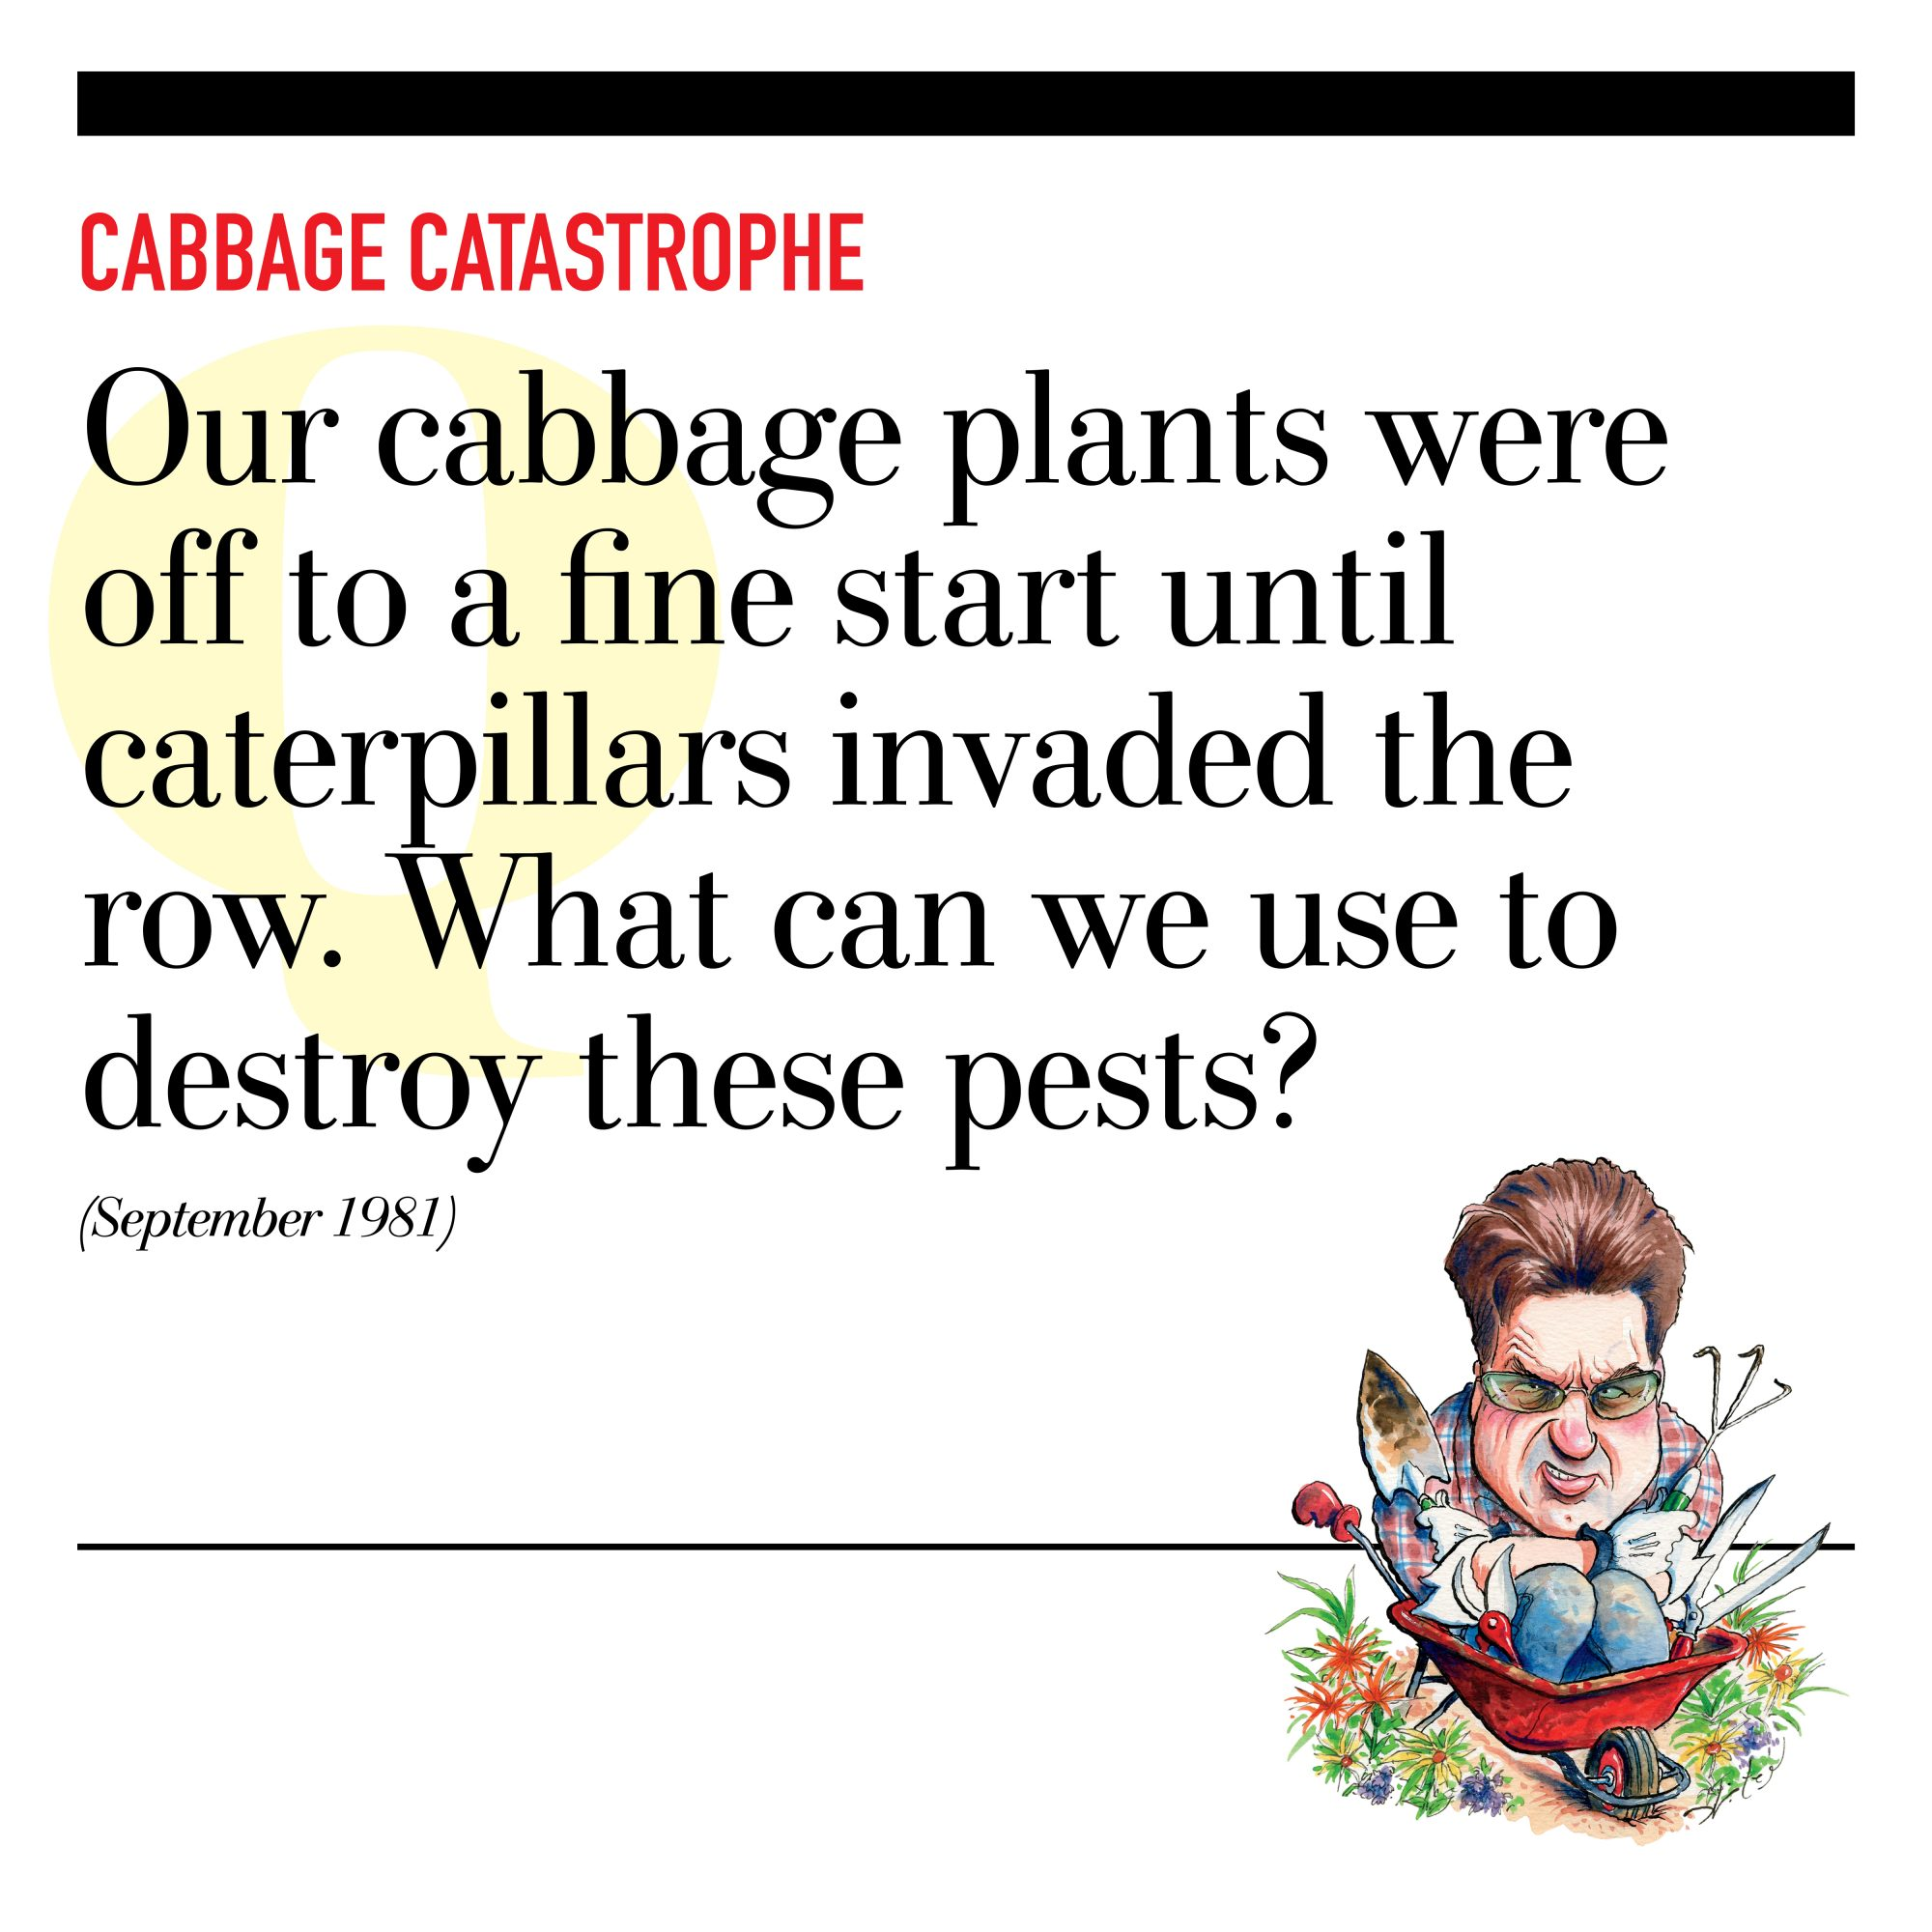 Cabbage Catastrophe